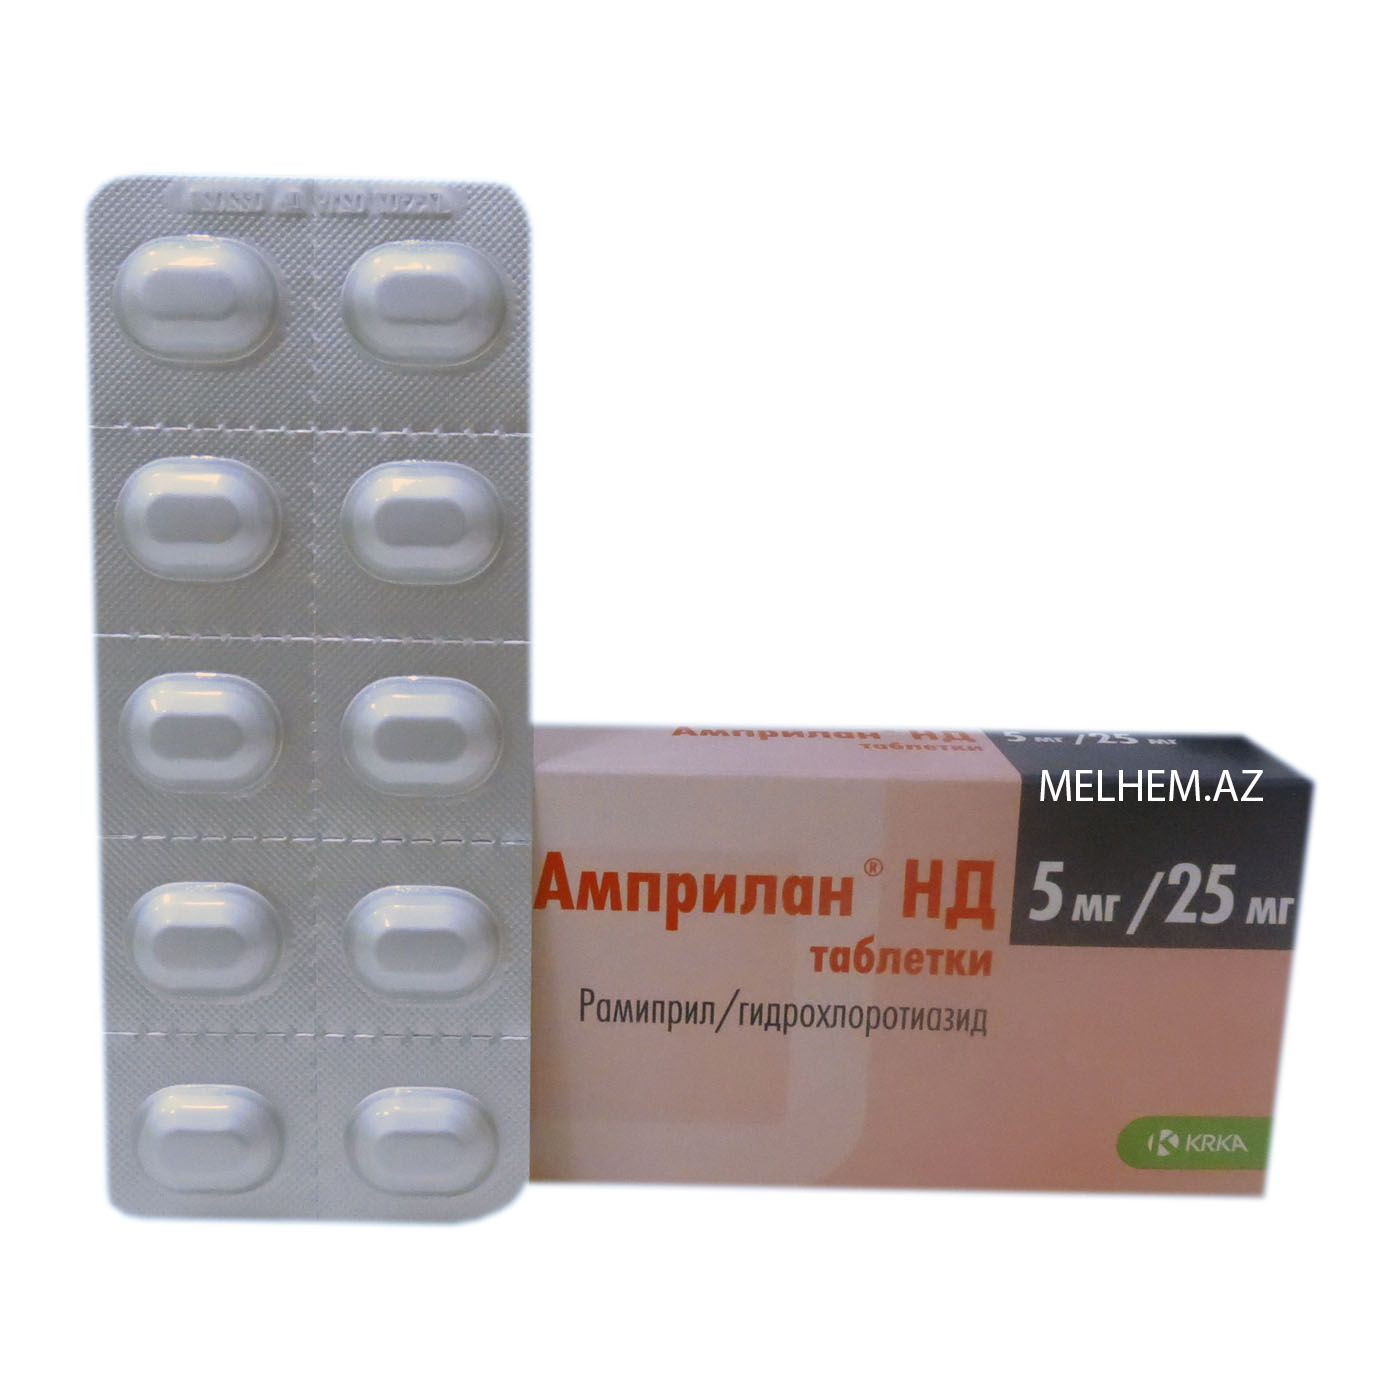 AMPRILAN ND 5 MG/25 MG